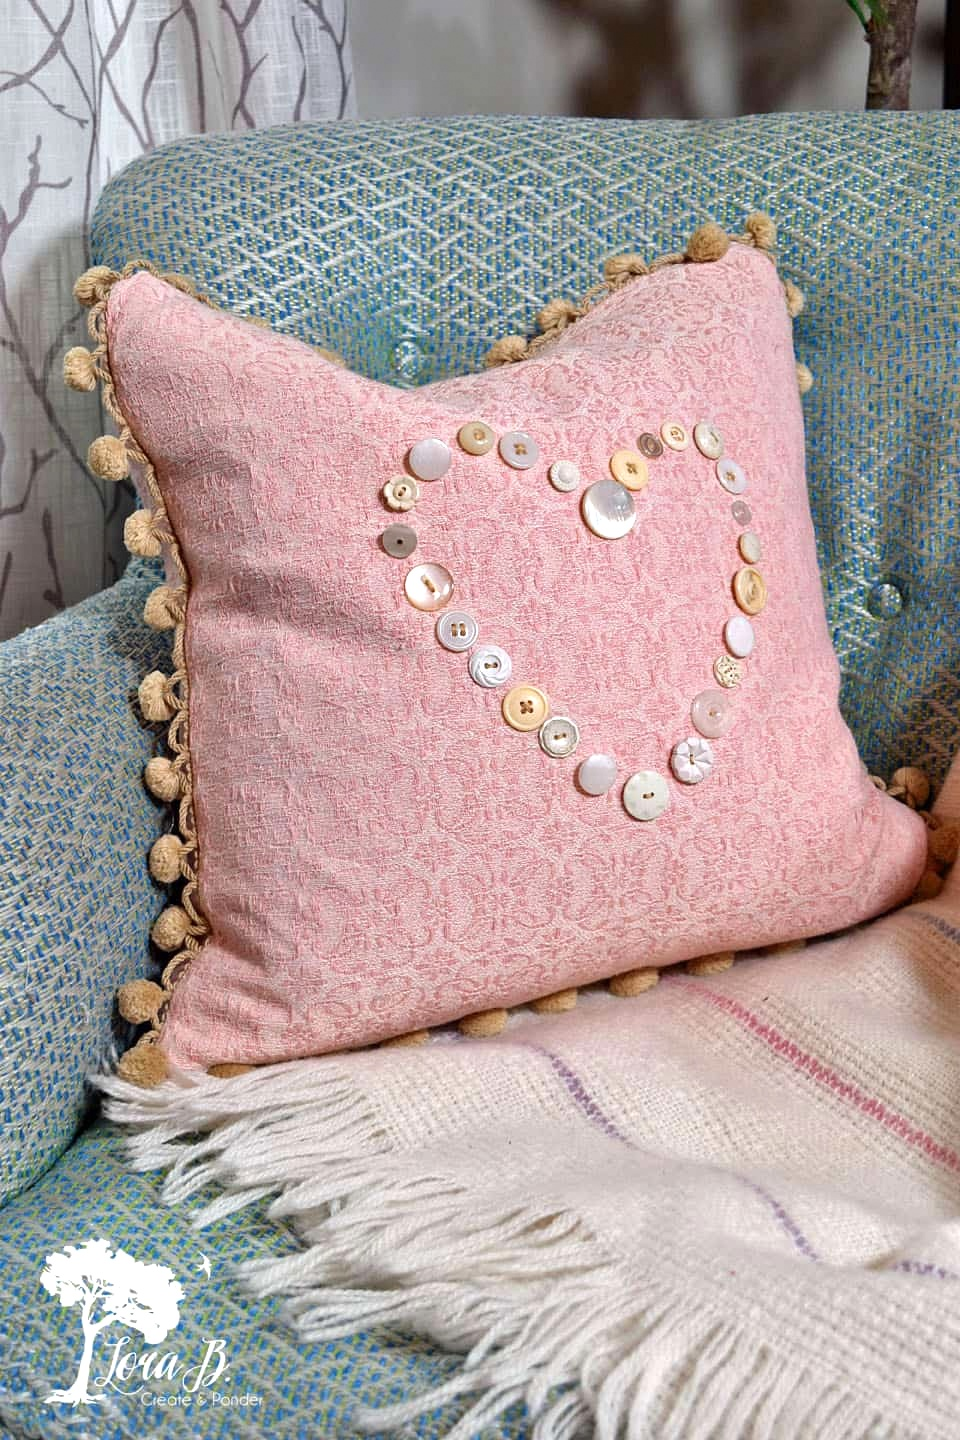 Button heart pillow, part of subtle Valentine's Day decor by Lora B, featured on Funky Junk Interiors